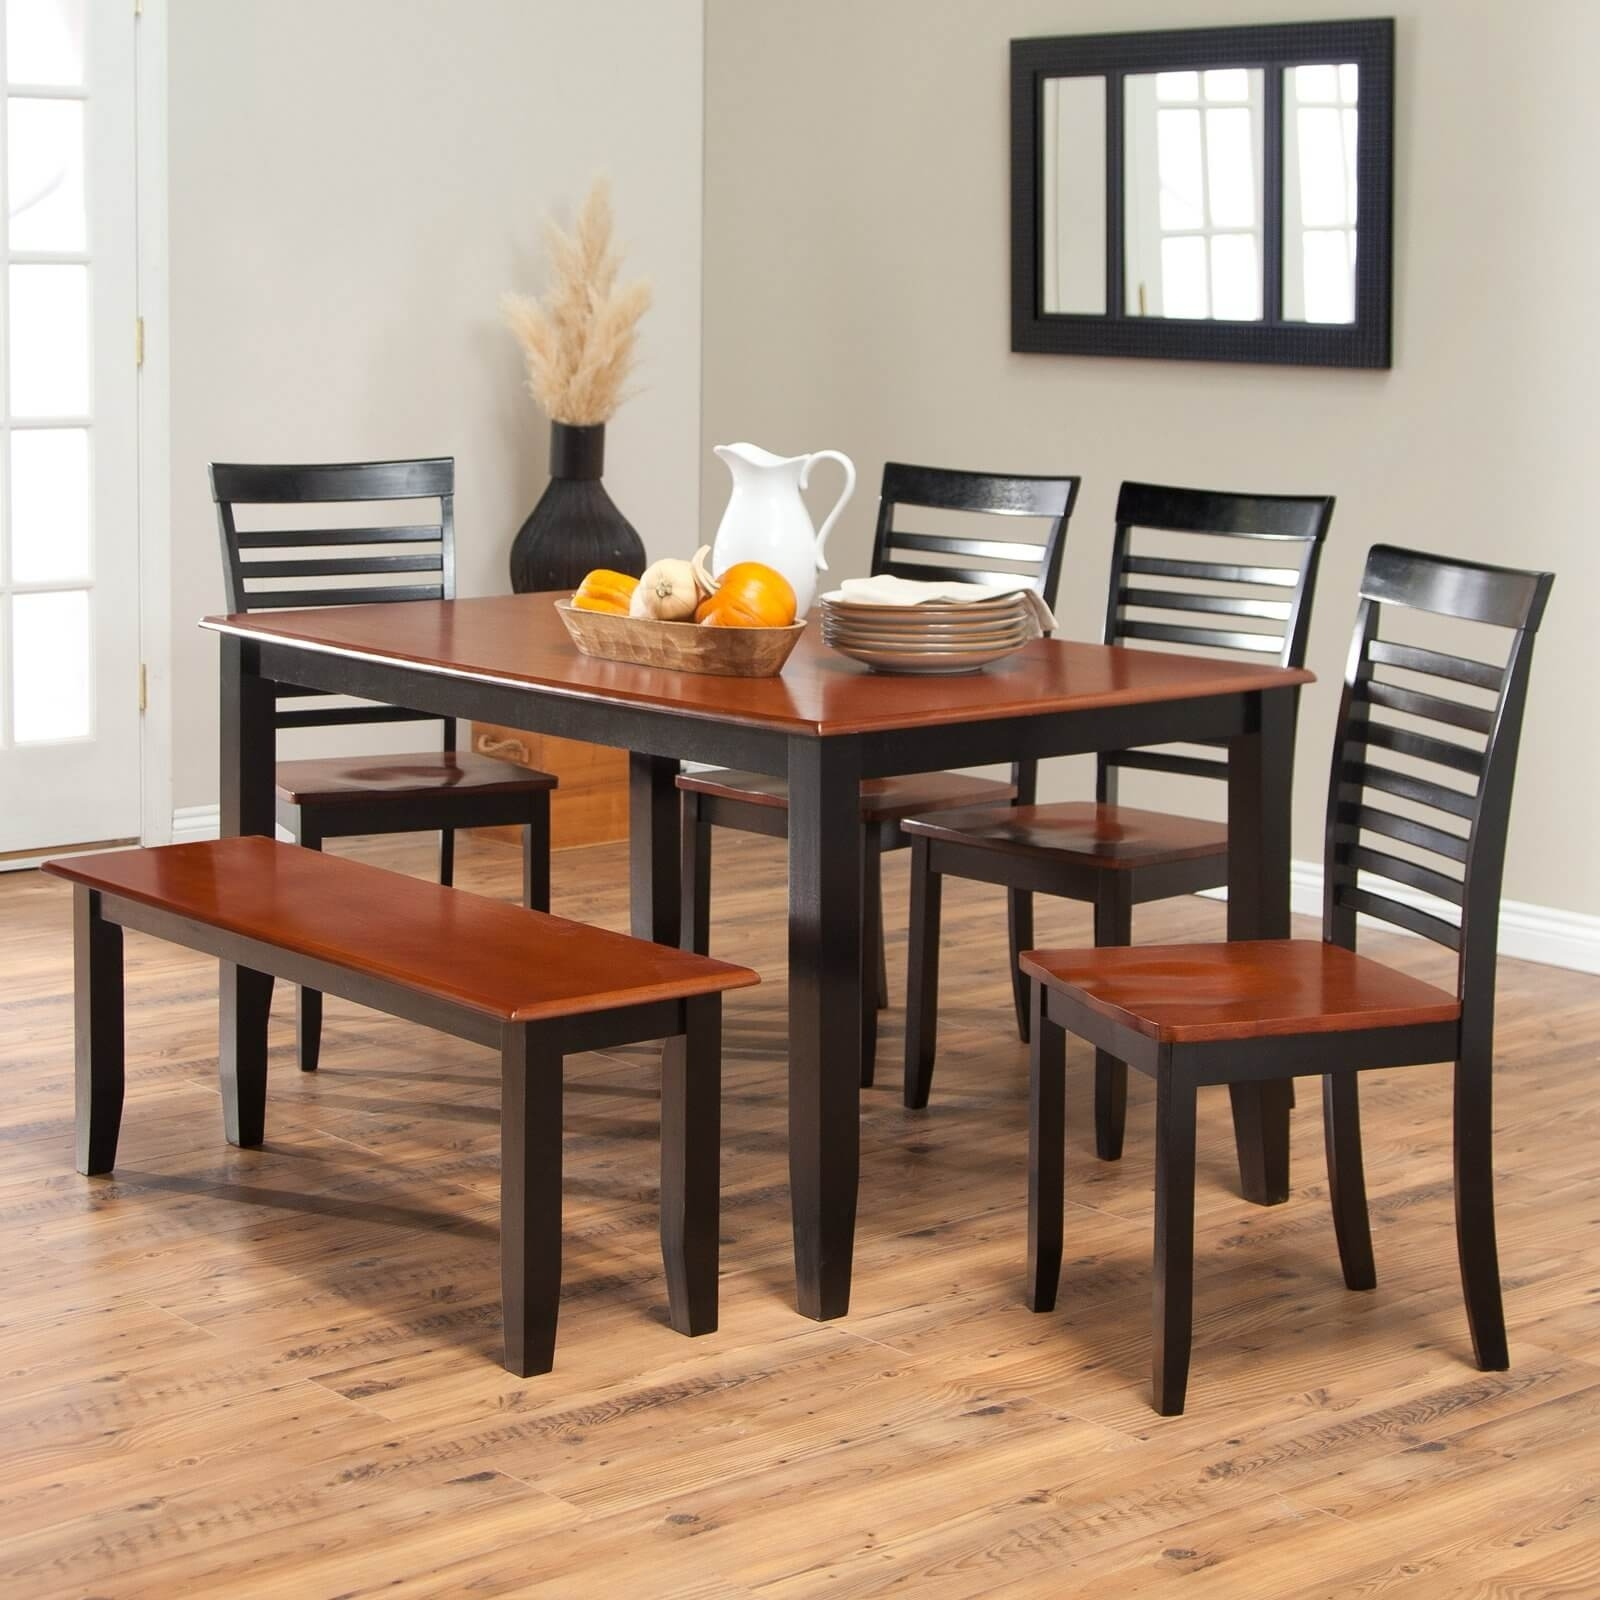 26 Dining Room Sets (Big And Small) With Bench Seating (2018) For Most Up To Date Craftsman 5 Piece Round Dining Sets With Uph Side Chairs (Photo 11 of 20)